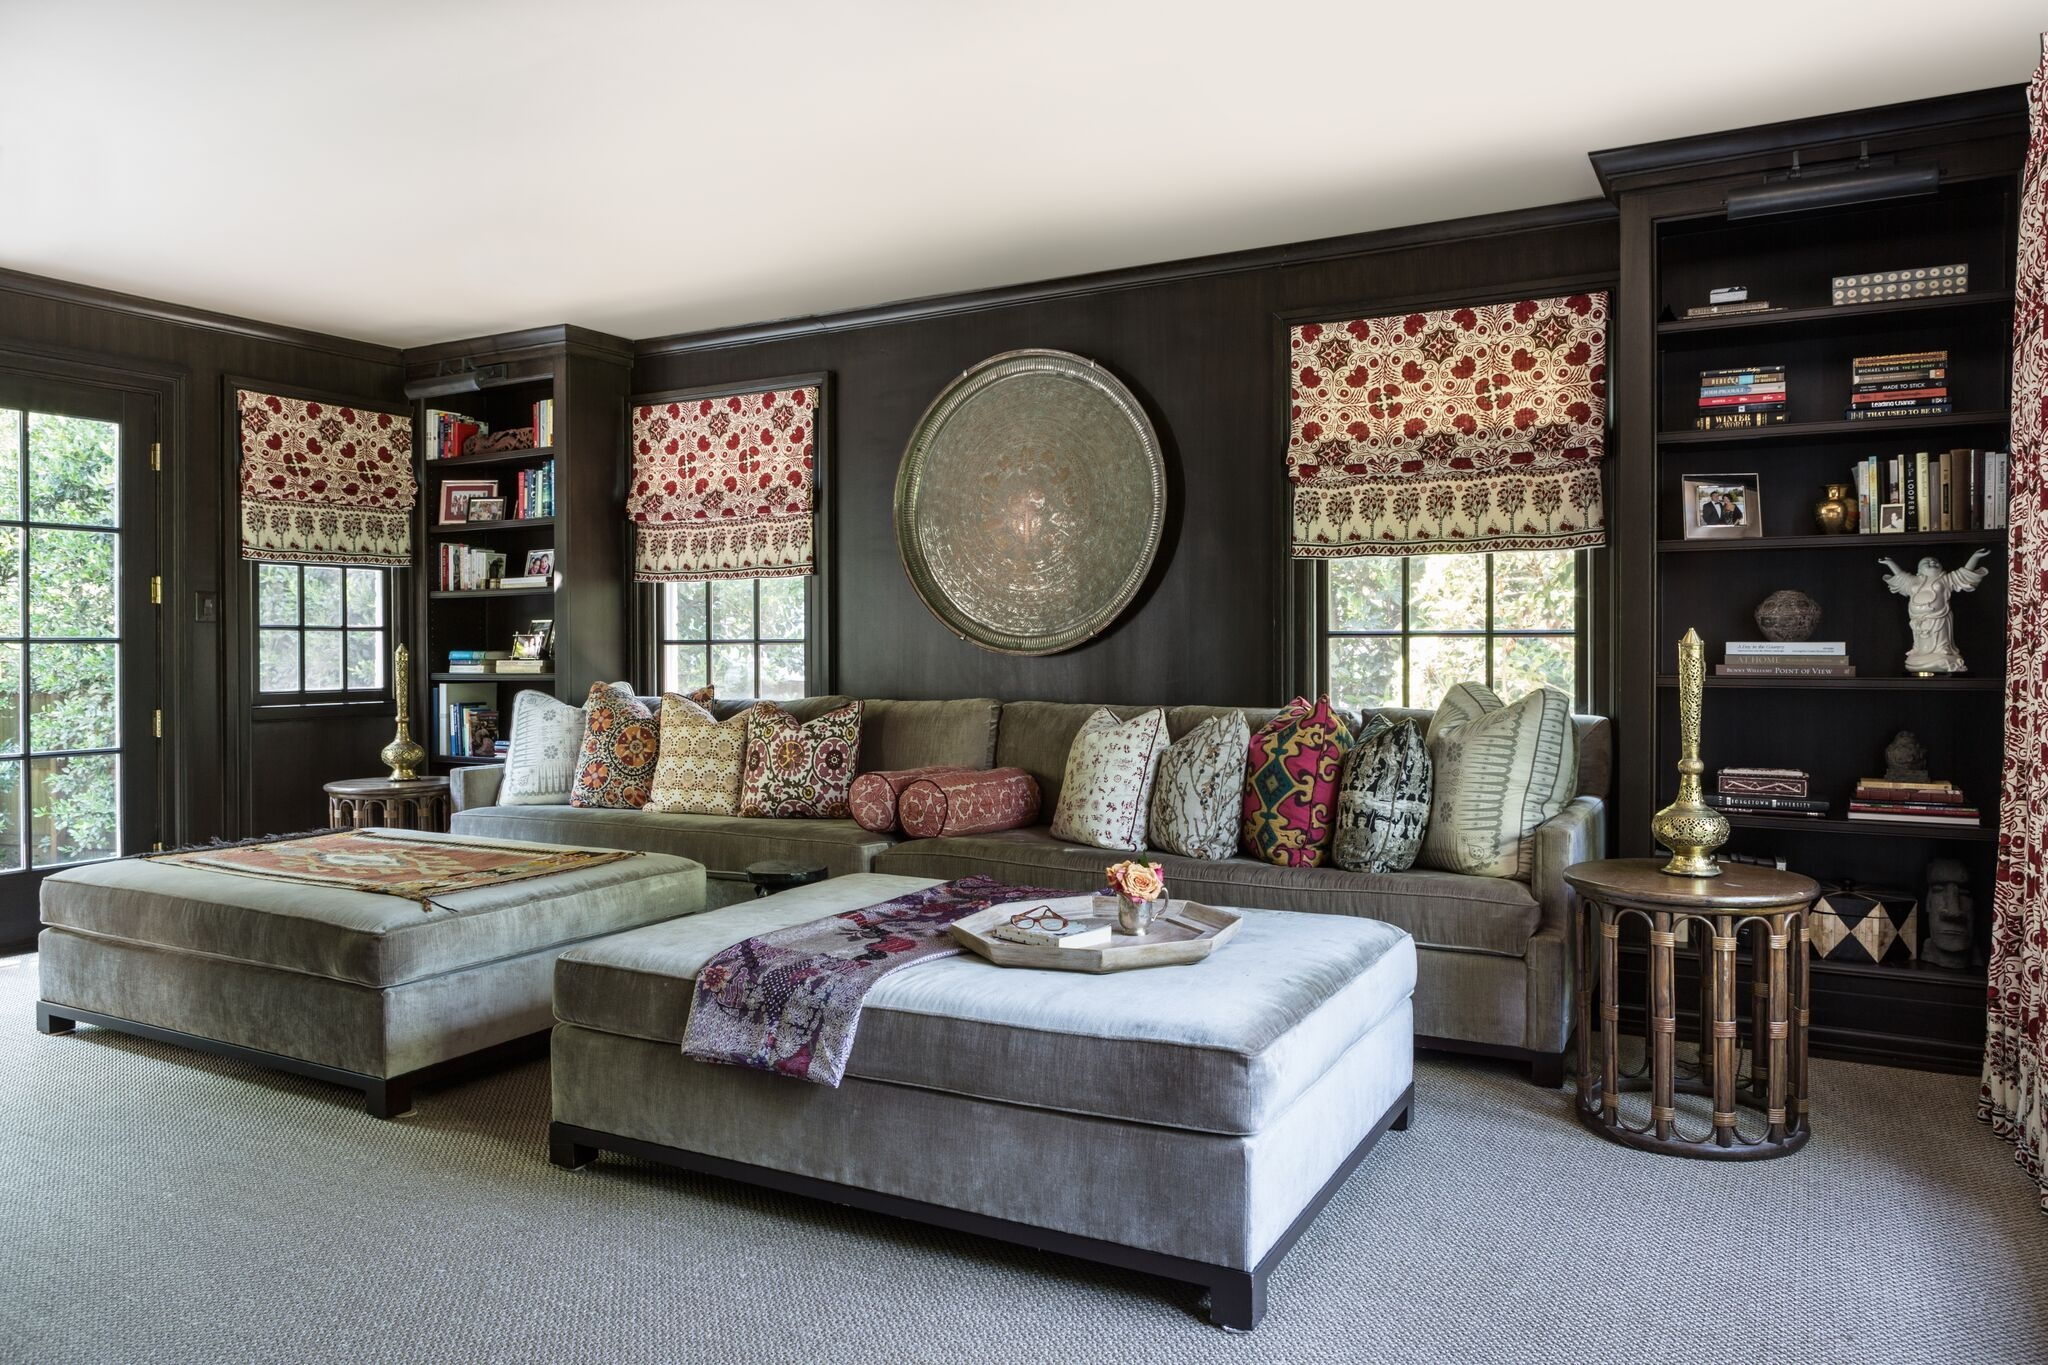 Marika-Meyer-Interior-Design-Maryland